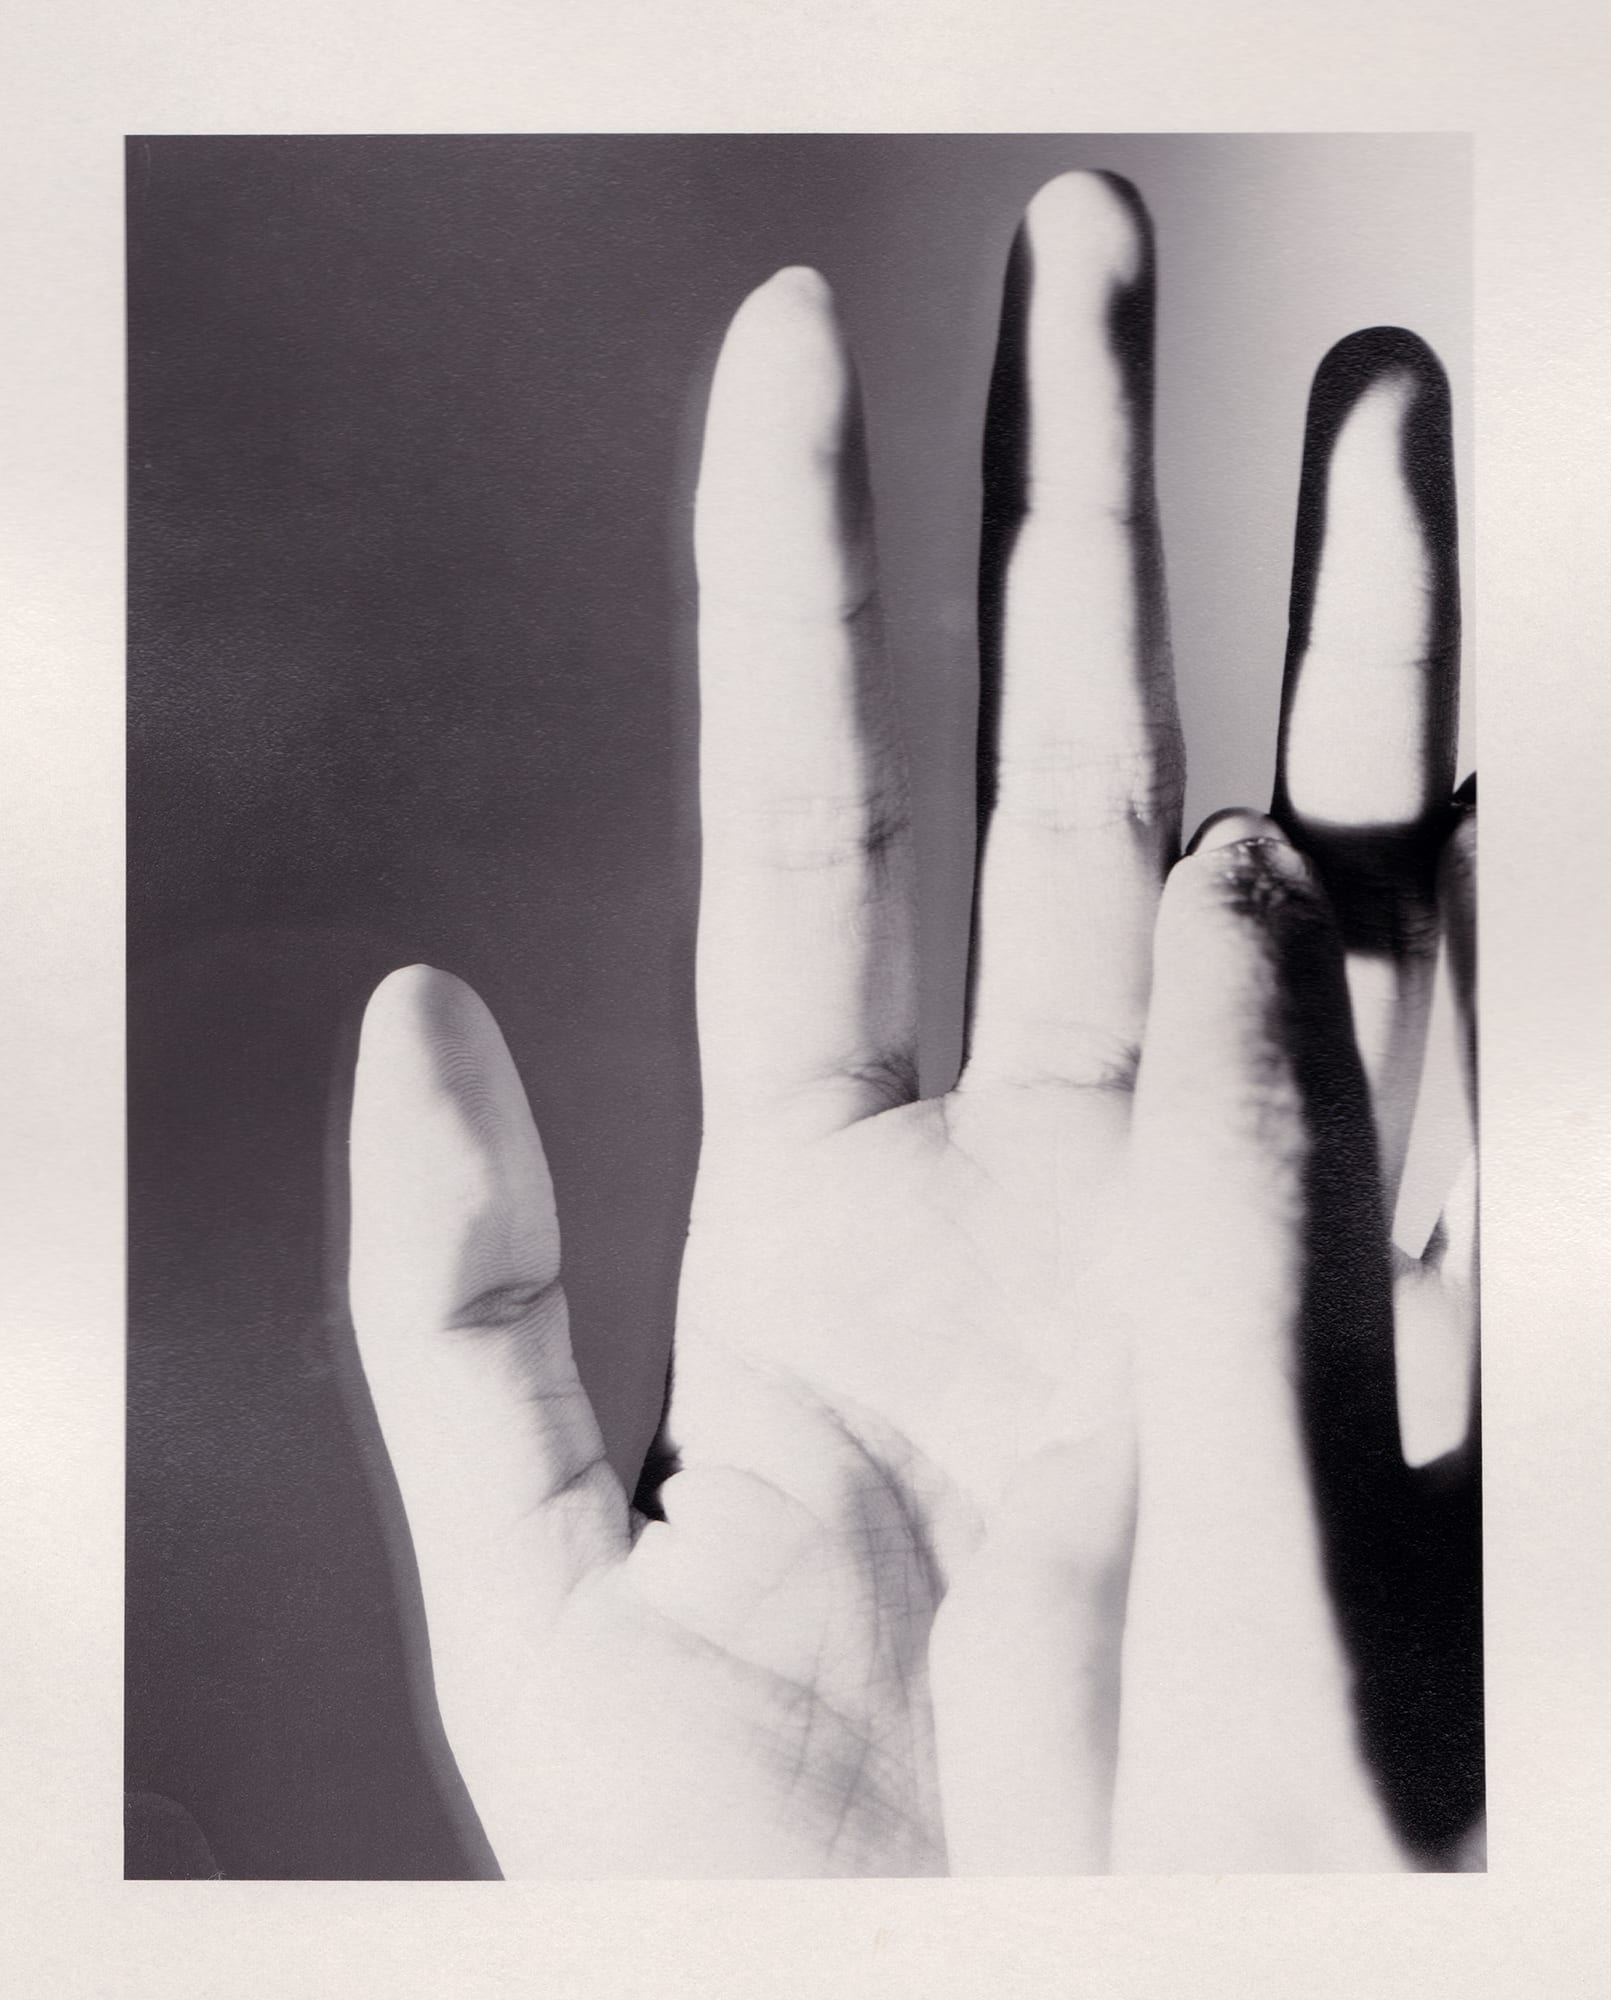 deanna-pizzitelli-hands-ii-toned-silver-gelatin-print-image-courtesy-of-stephen-bulger-gallery